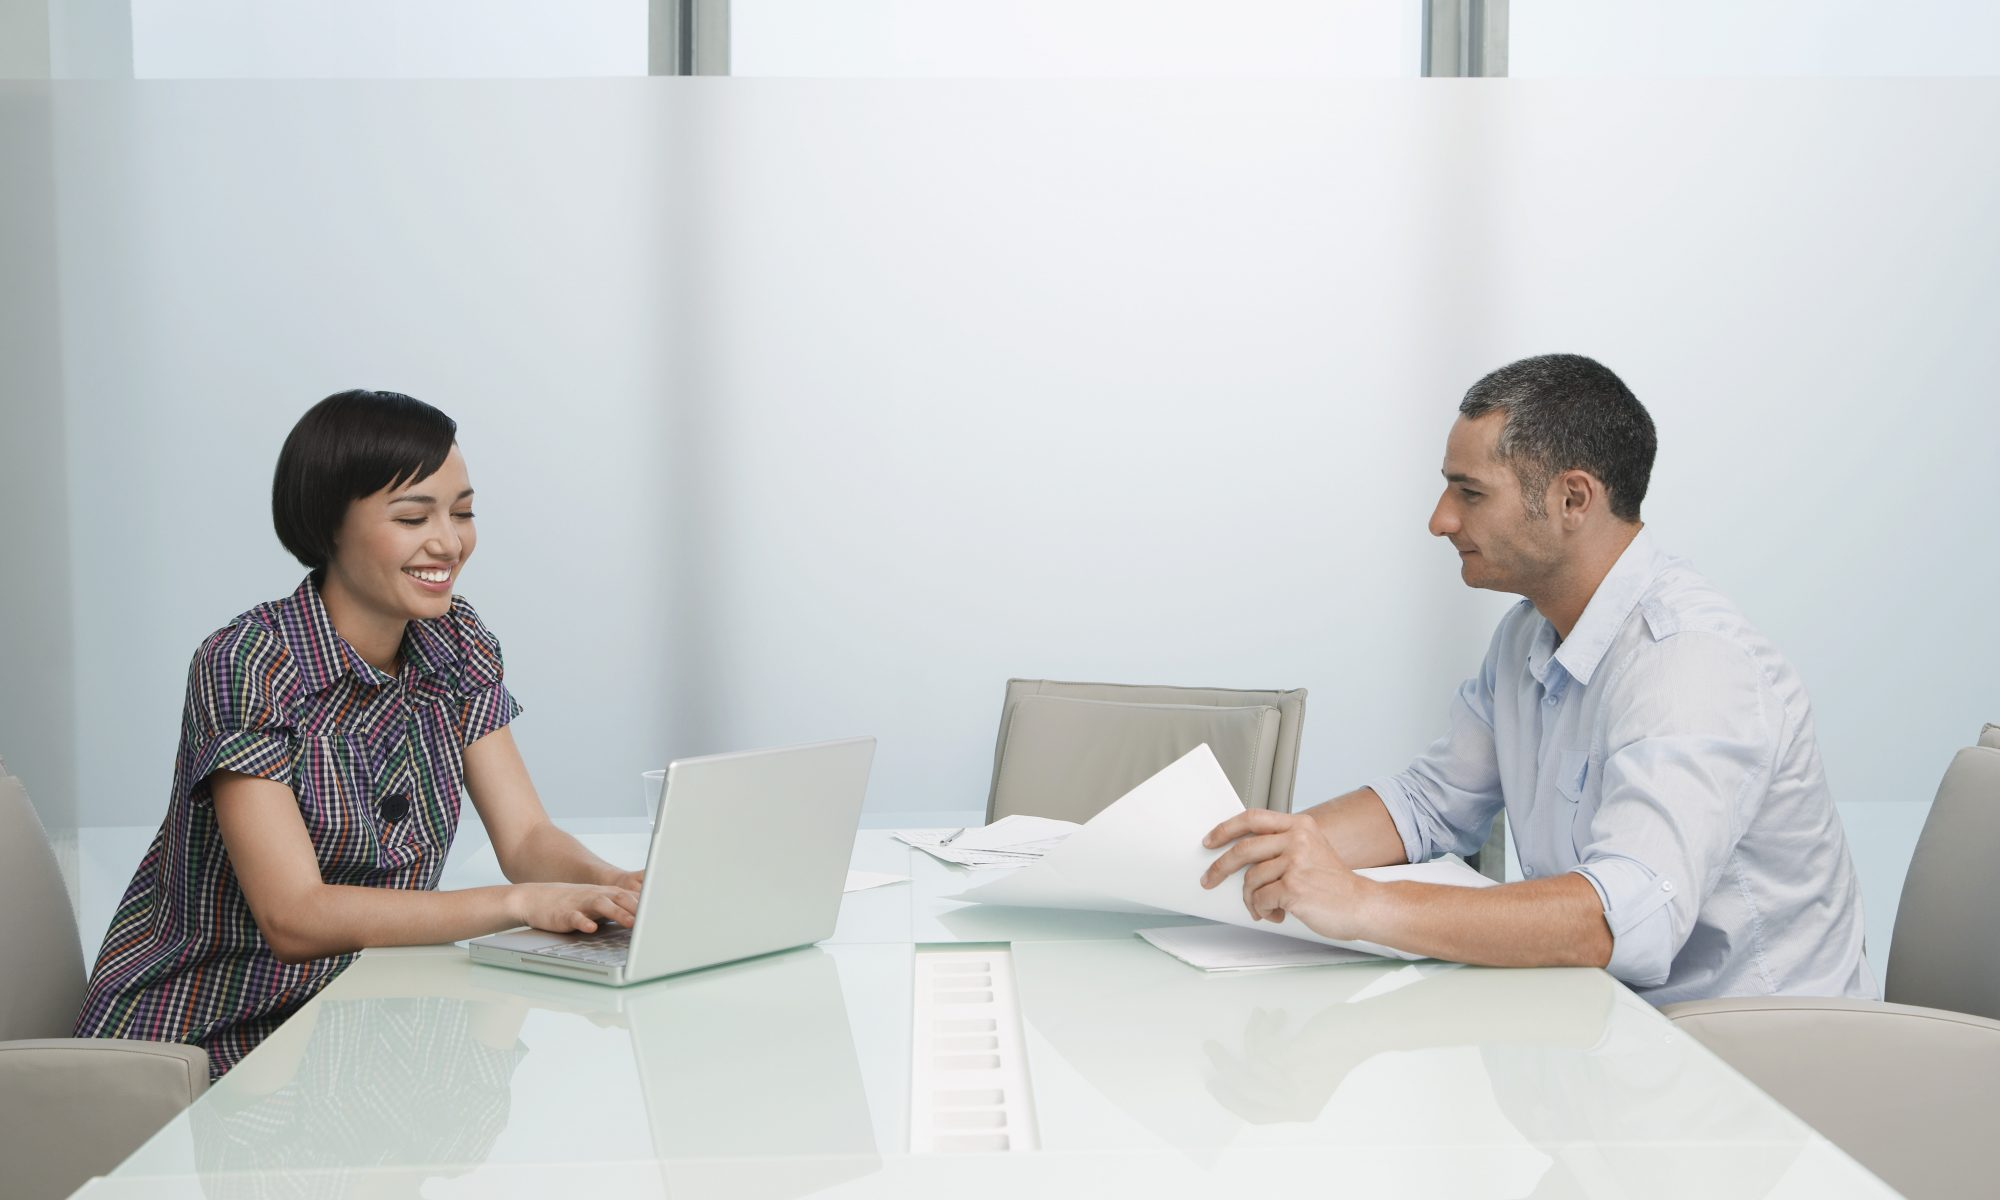 leadership interview questions to ask